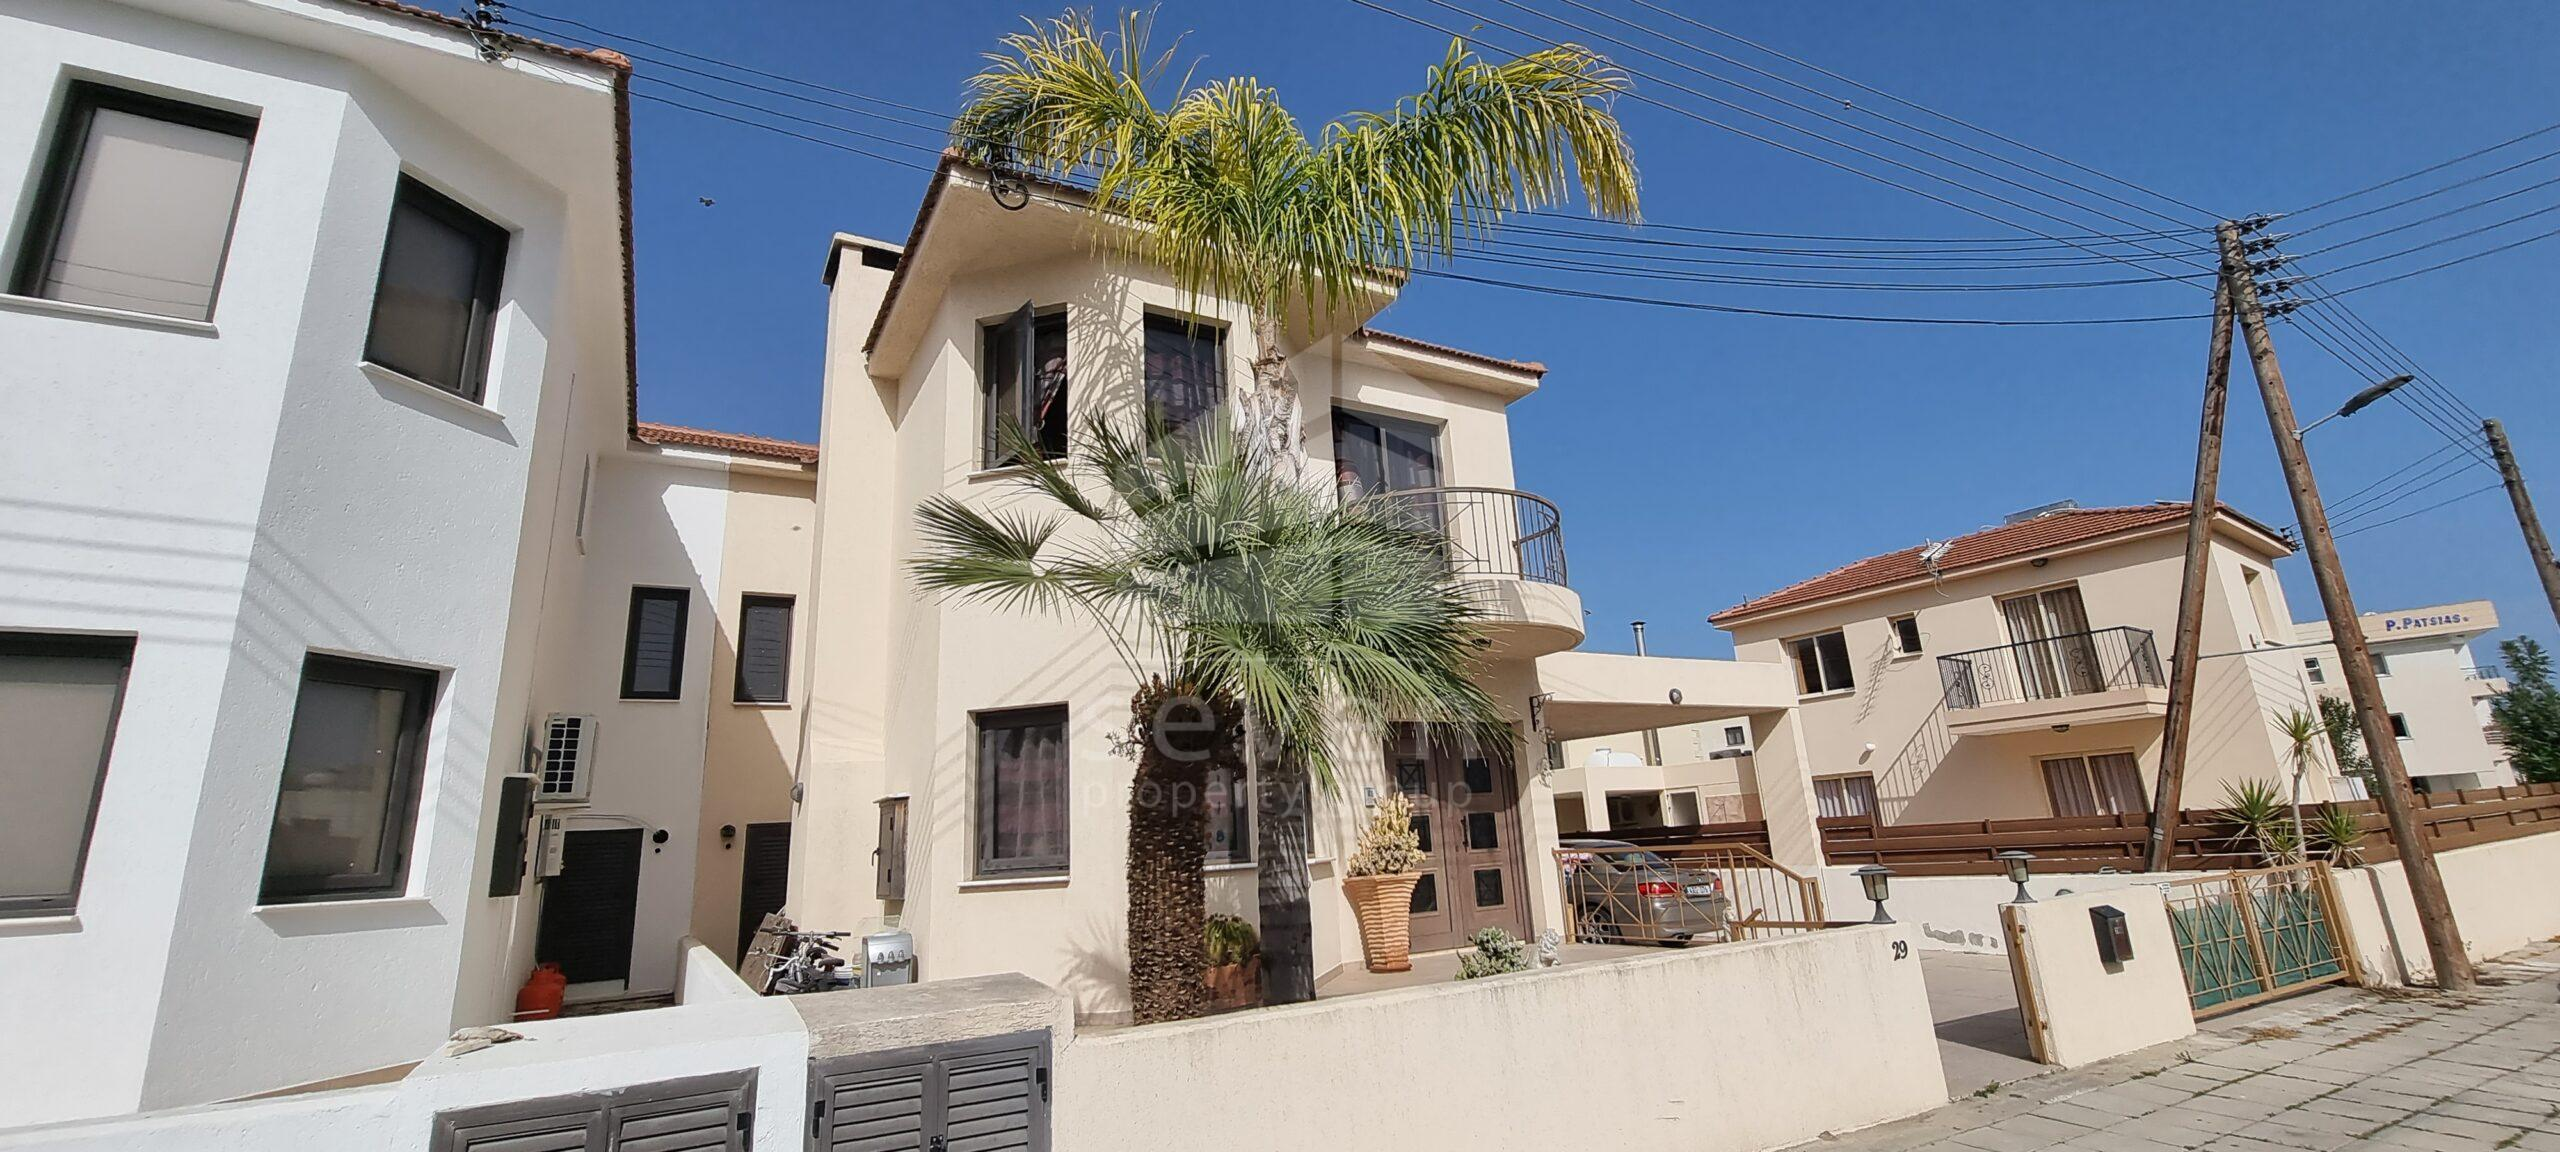 3 BED + ATTIC HOUSE FOR SALE IN LIVADIA